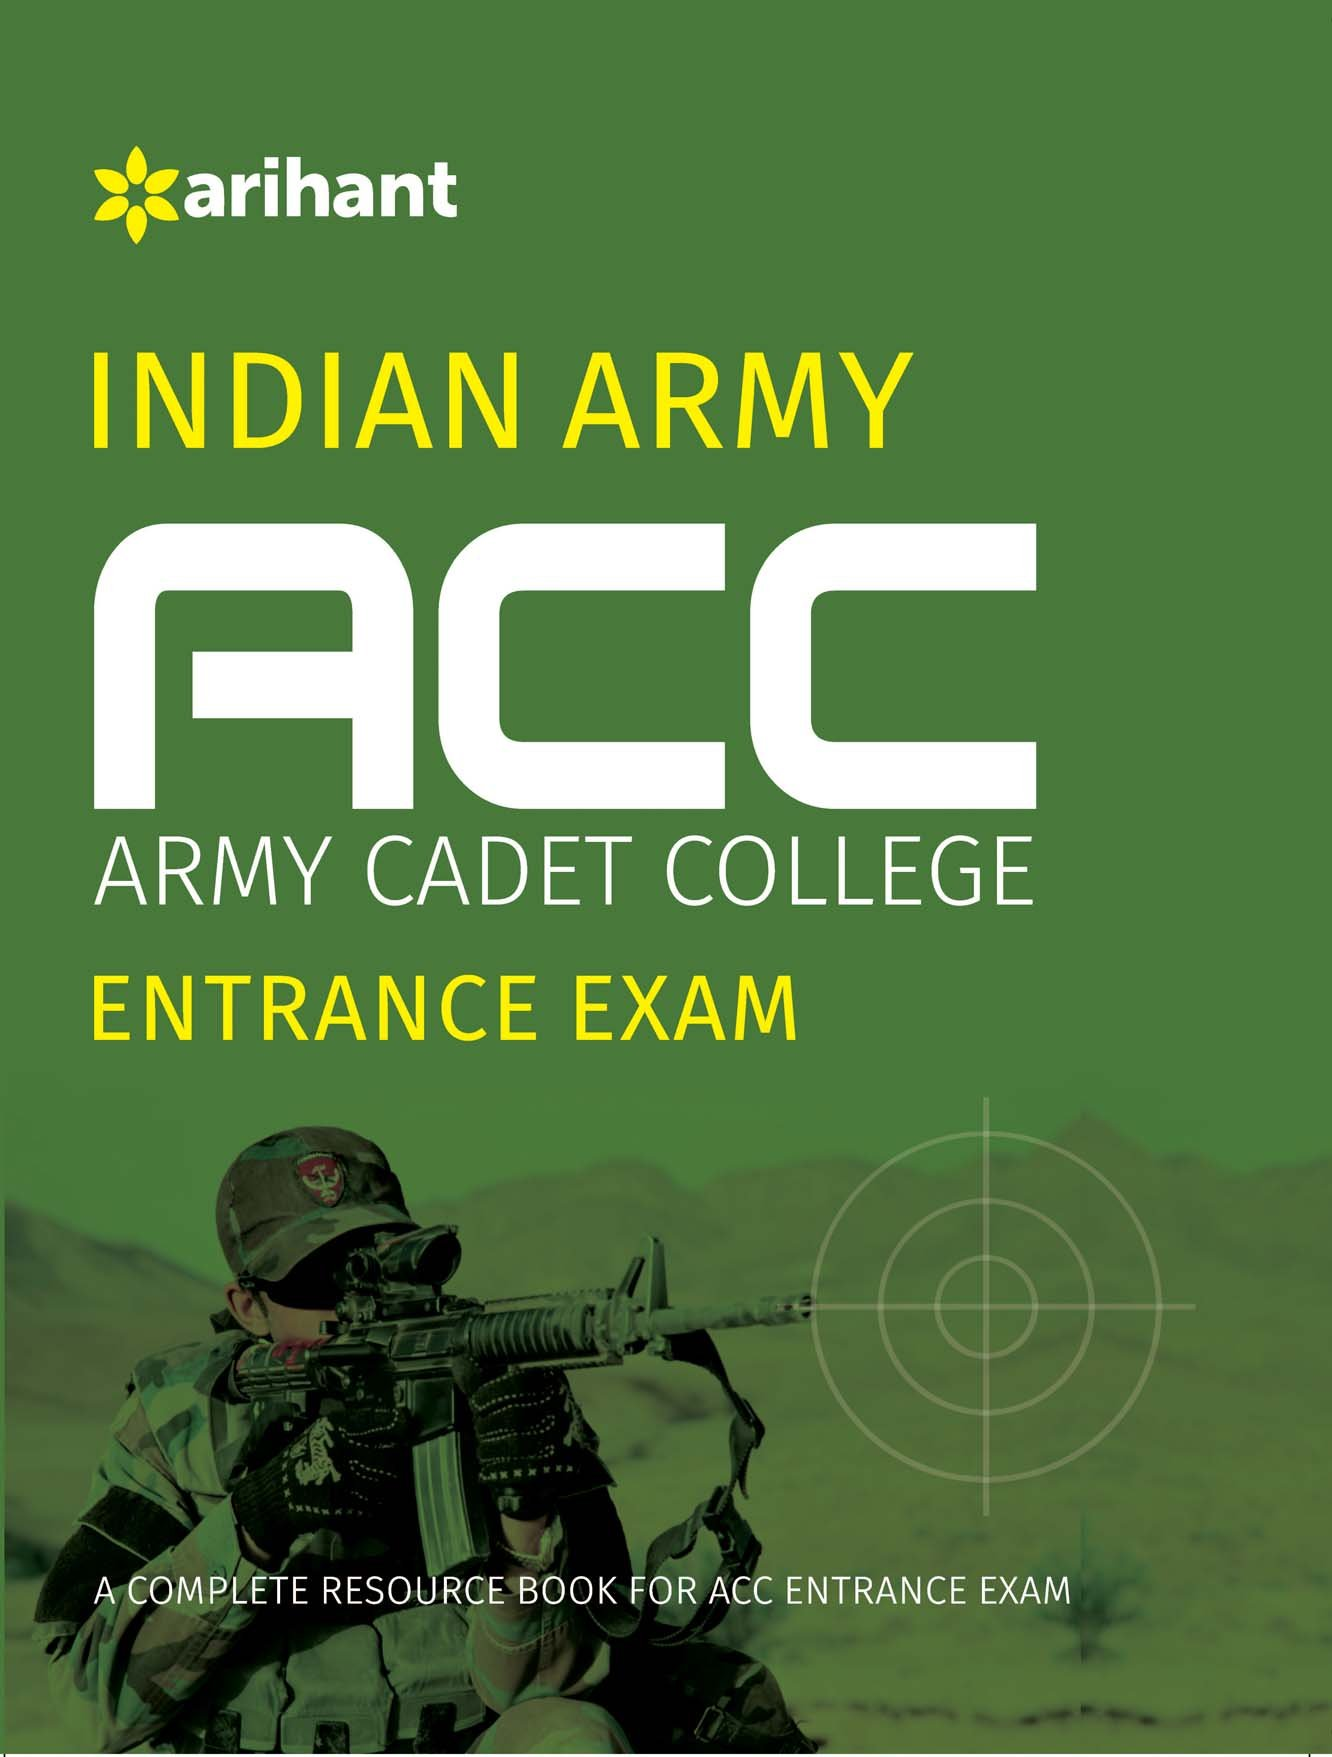 army cadet college easy